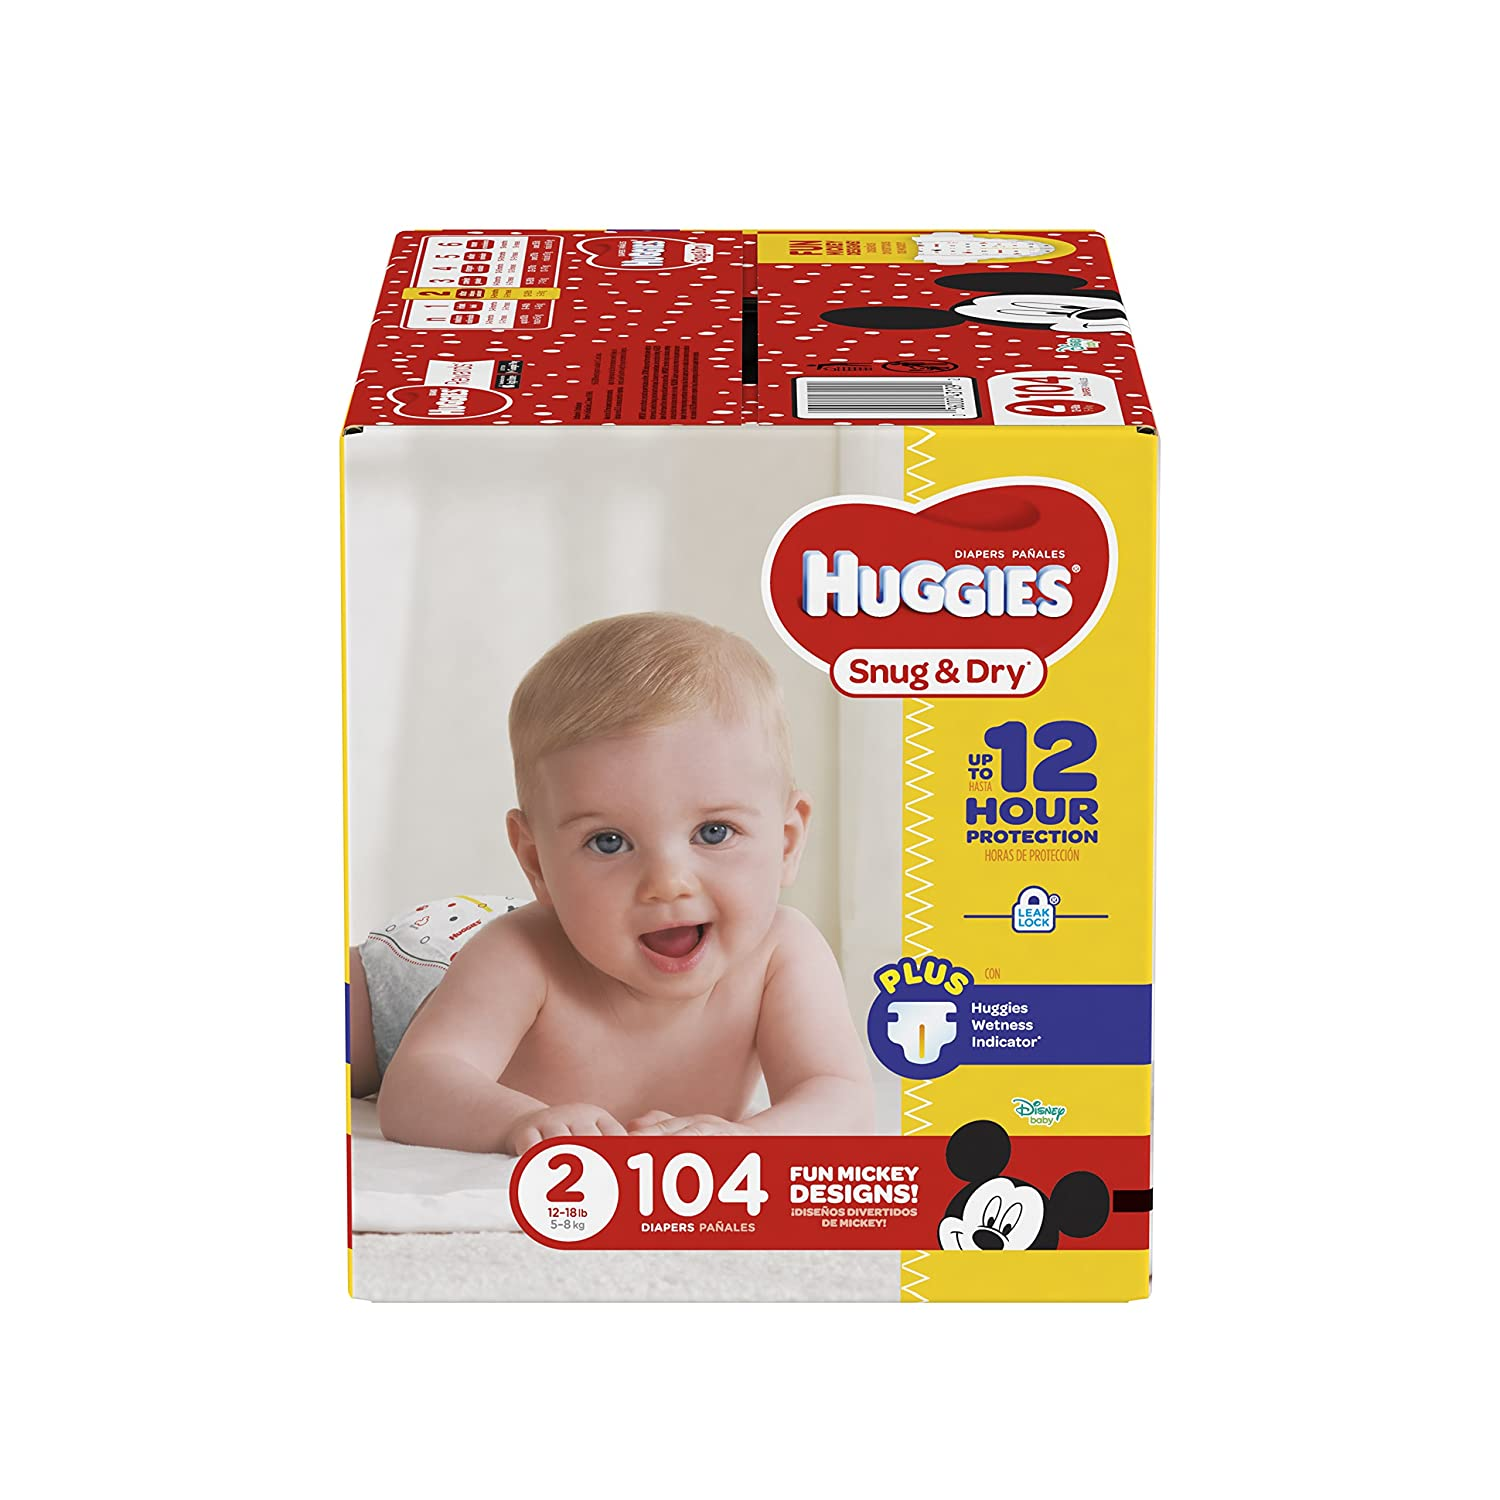 Huggies Snug and Dry Diapers, Size 2, 104 Count by Huggies: Amazon.es: Salud y cuidado personal